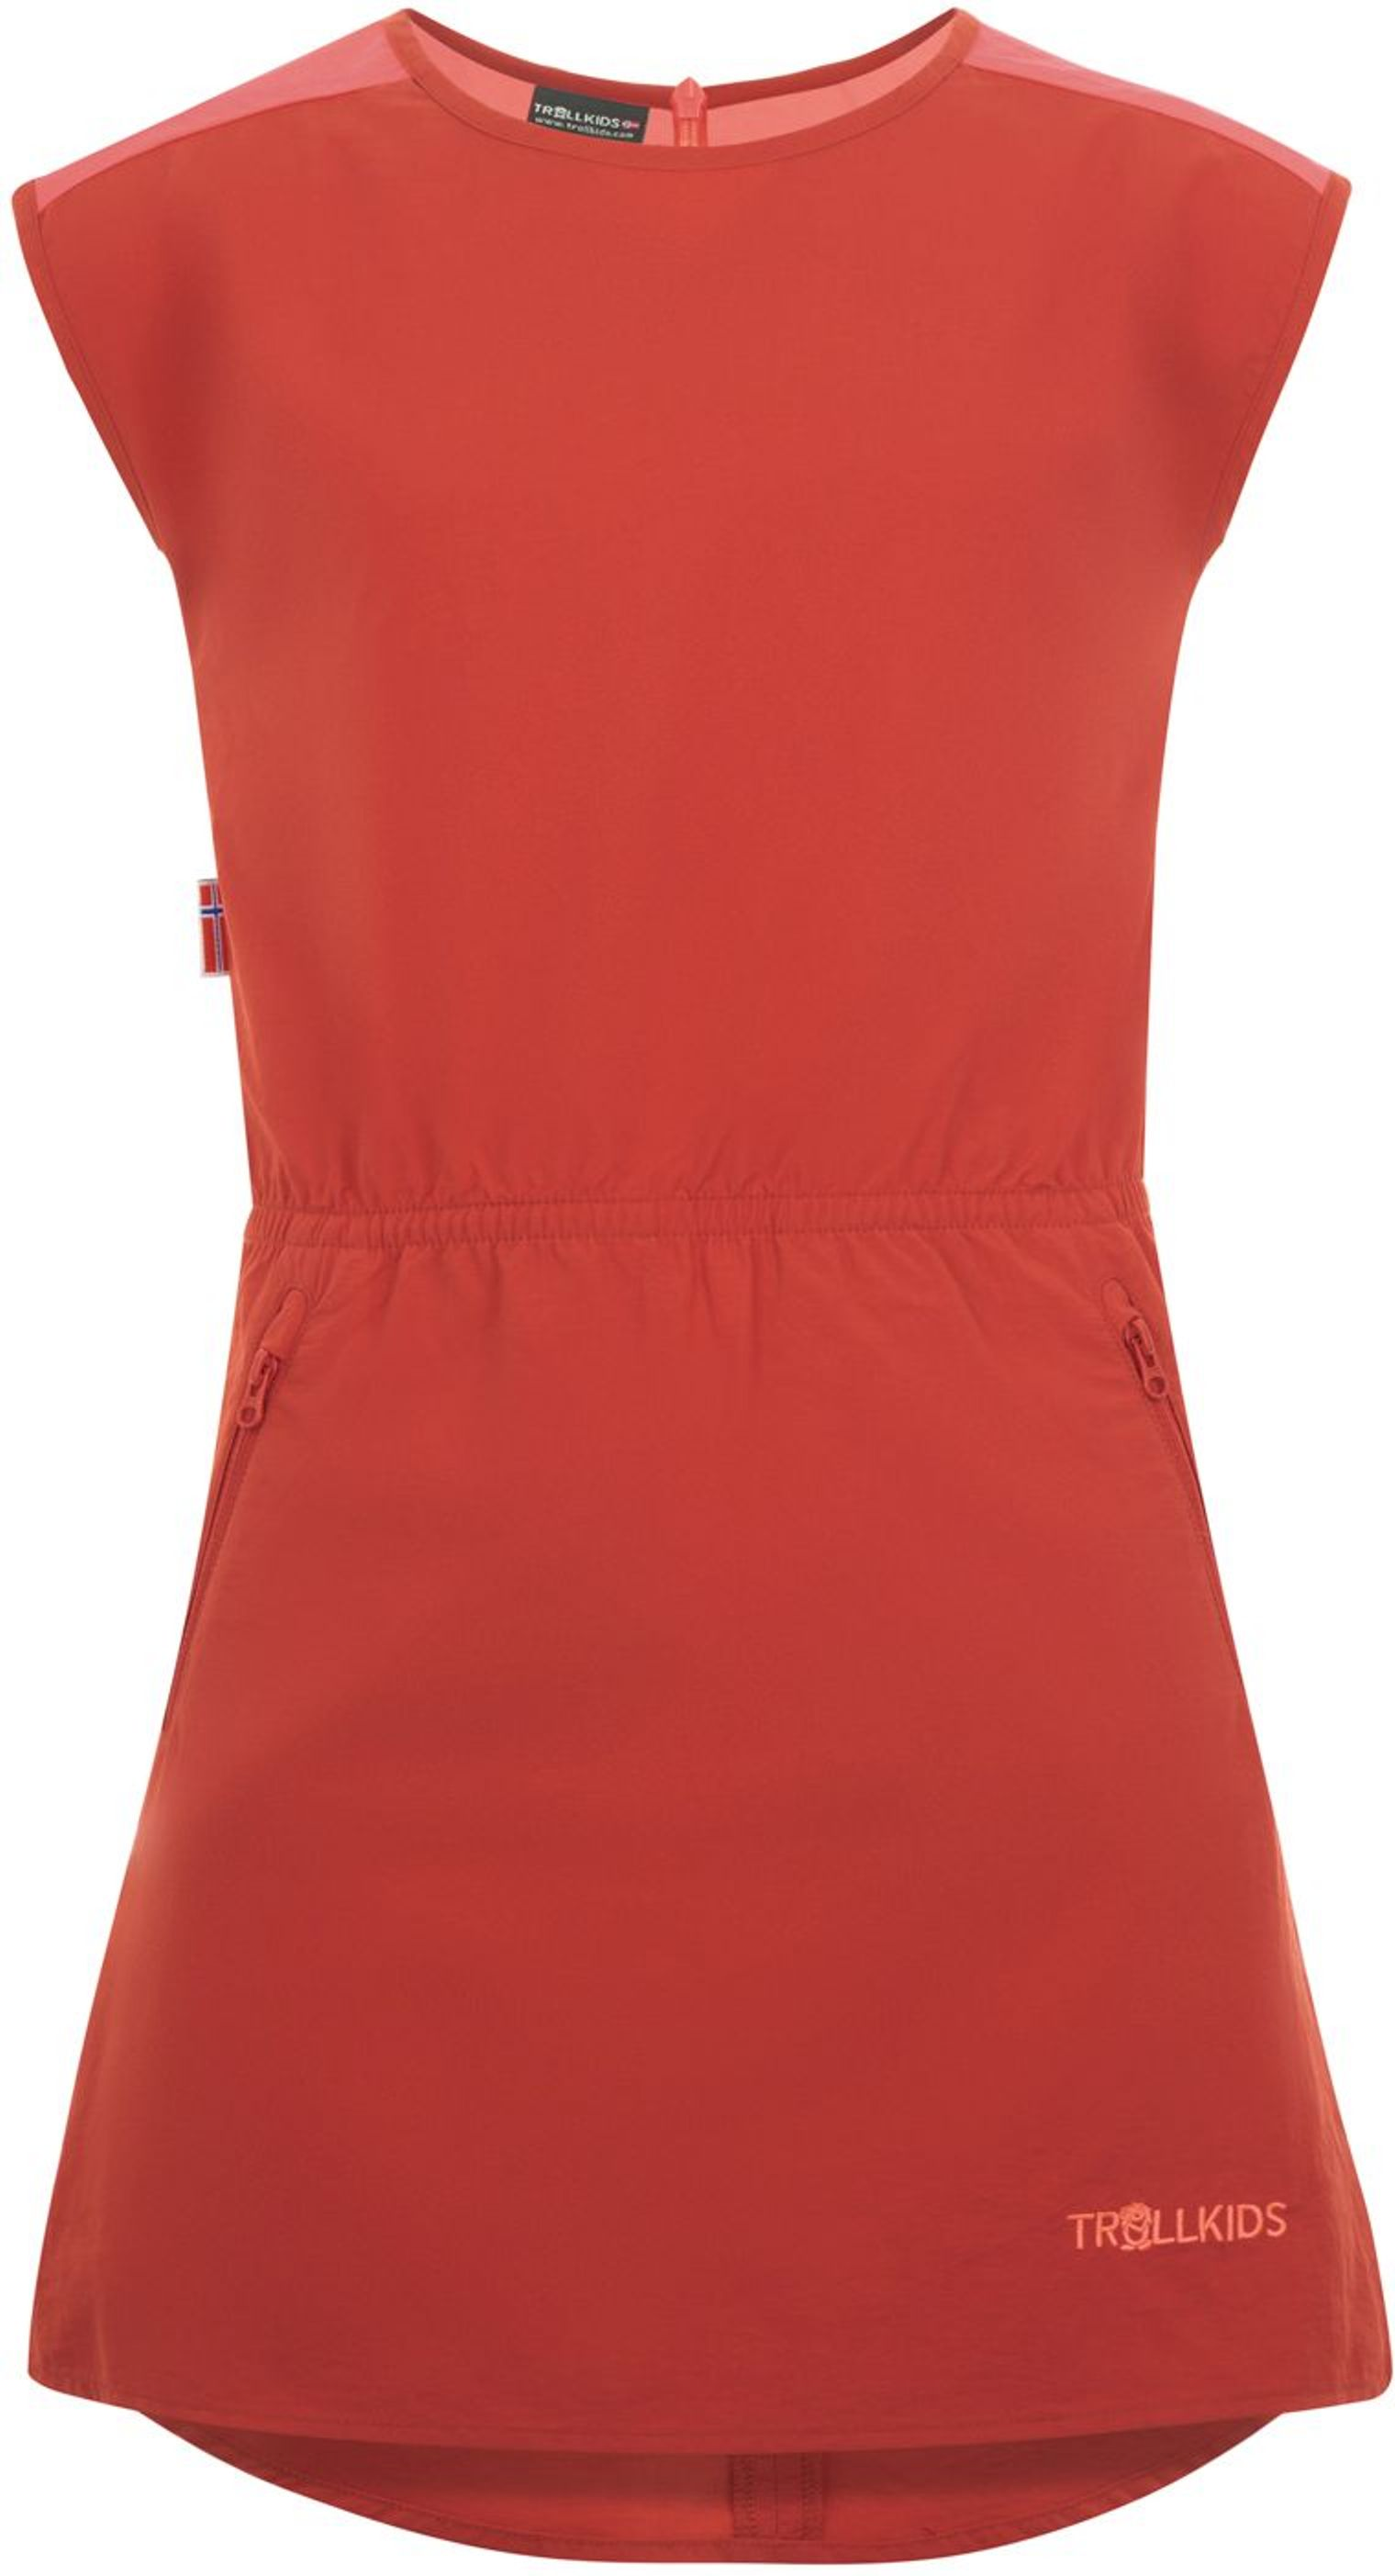 Trollkids Girls Arendal Dress mystic red/coral